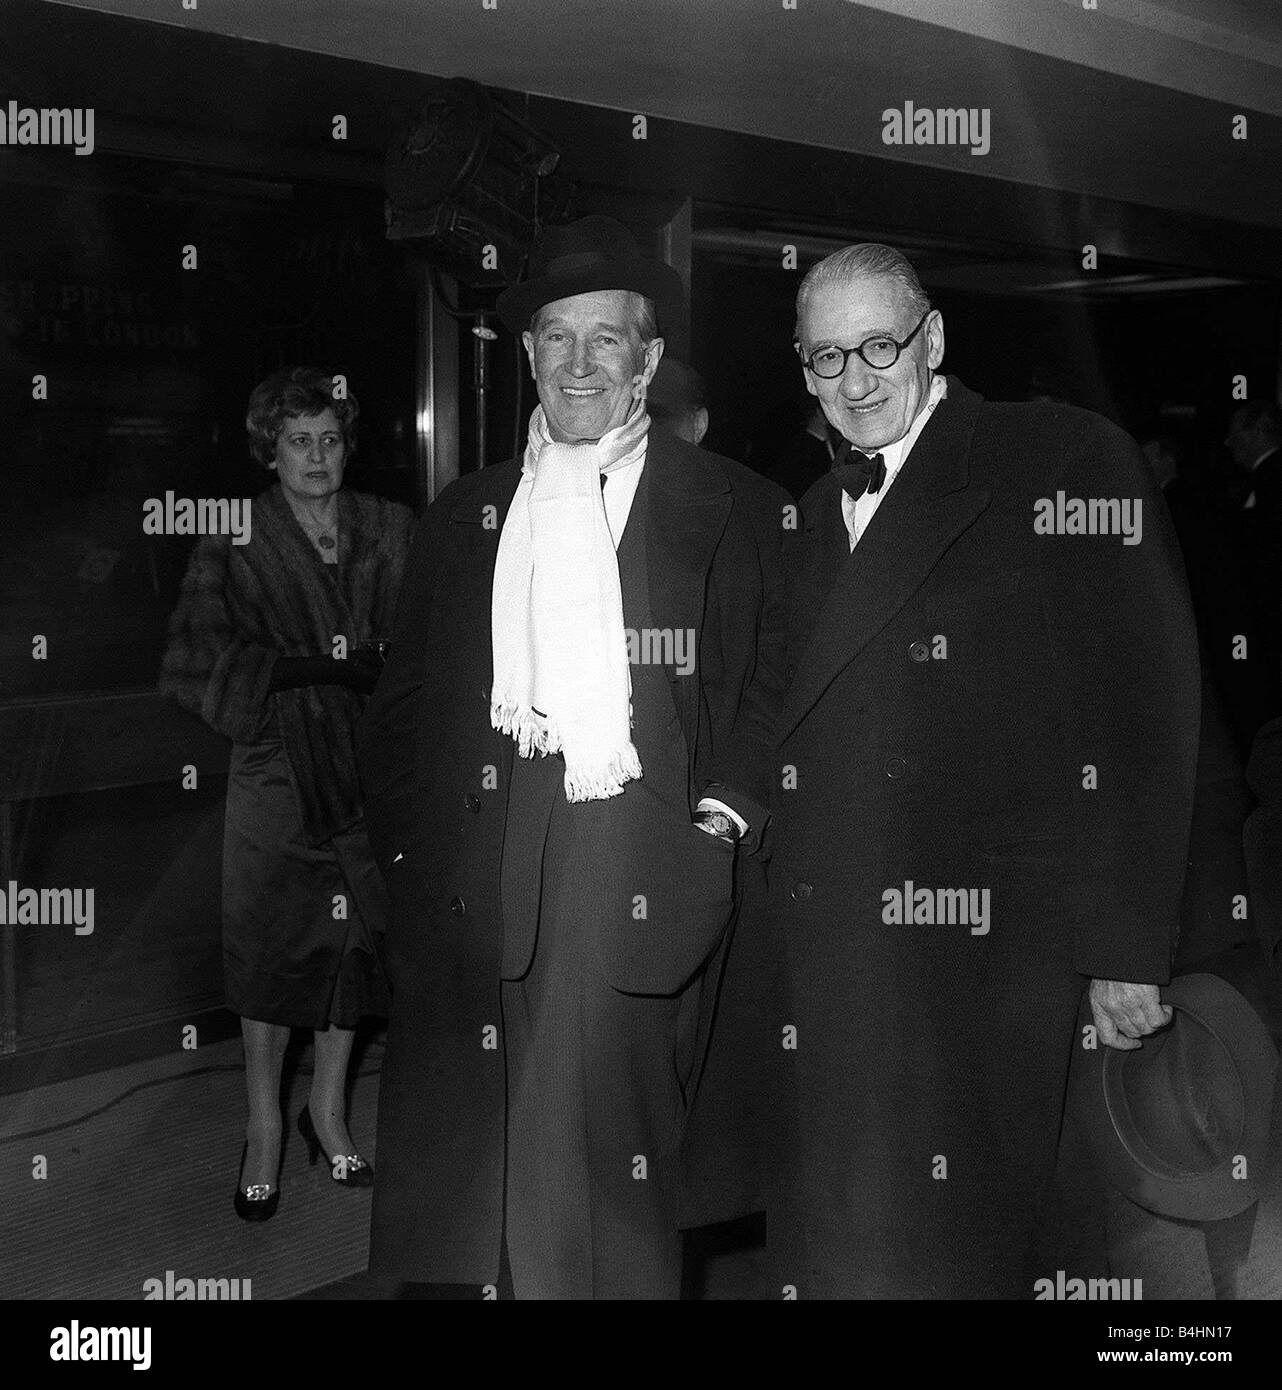 Maurice Chevalier Actor arrives at the premiere of the new musical film GiGi at the new Columbia Cinema Shaftesbury - Stock Image